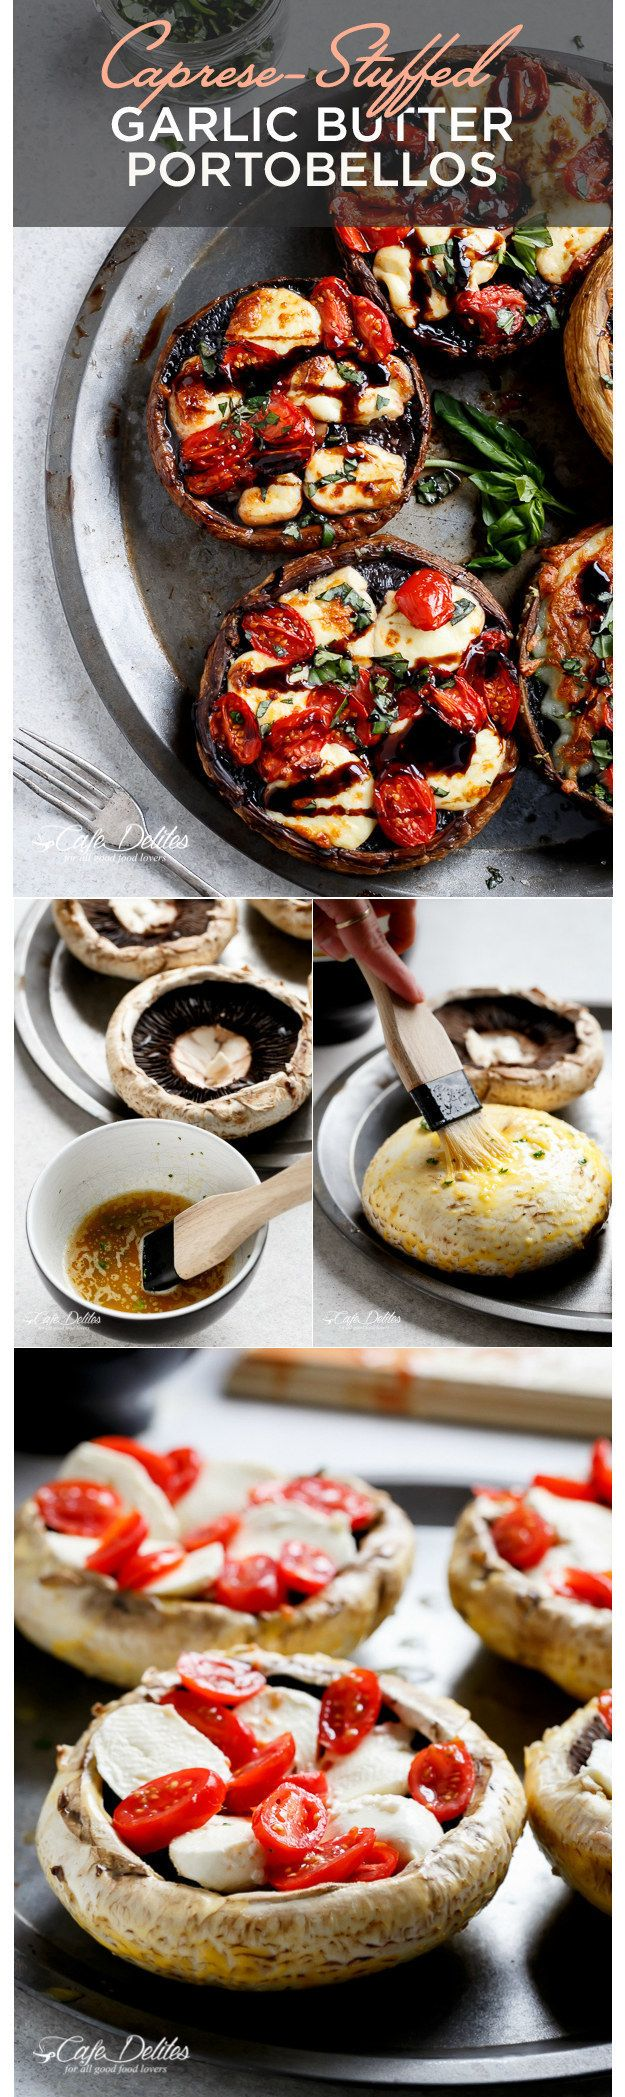 Caprese-Stuffed Garlic Butter Portobellos                                                                                                                                                                                 More